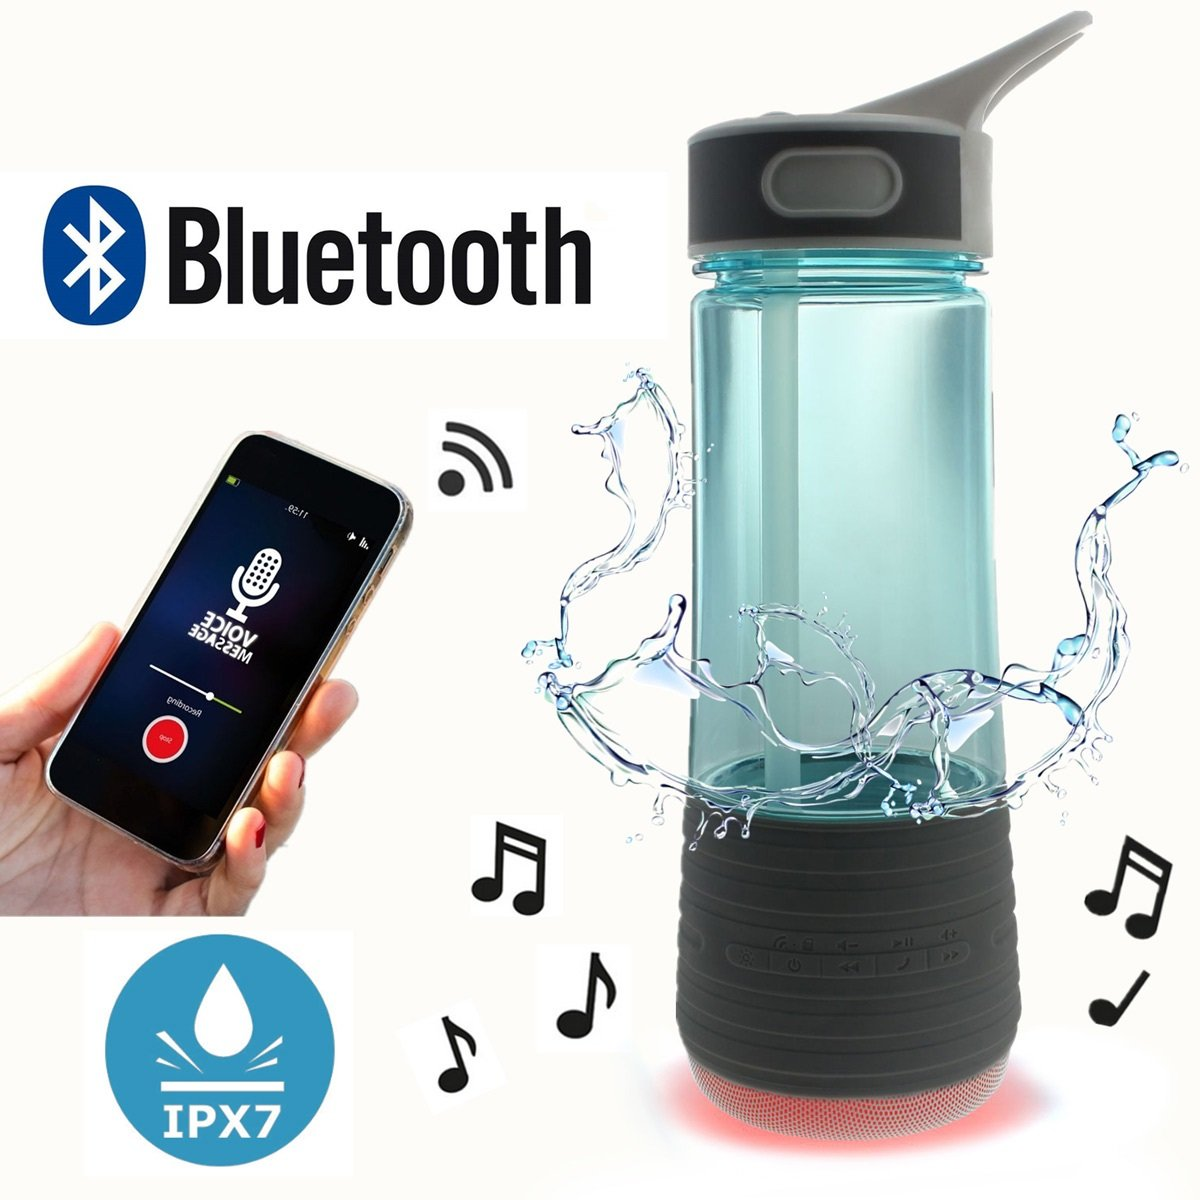 Travel Water Bottle with Speakers Bluetooth & Straw Outdoor & Safety Light for Hiking | BPA Free Water Bottle Wireless IPX7 Waterproof Rechargeable Stereo Mini Speaker By cAoku